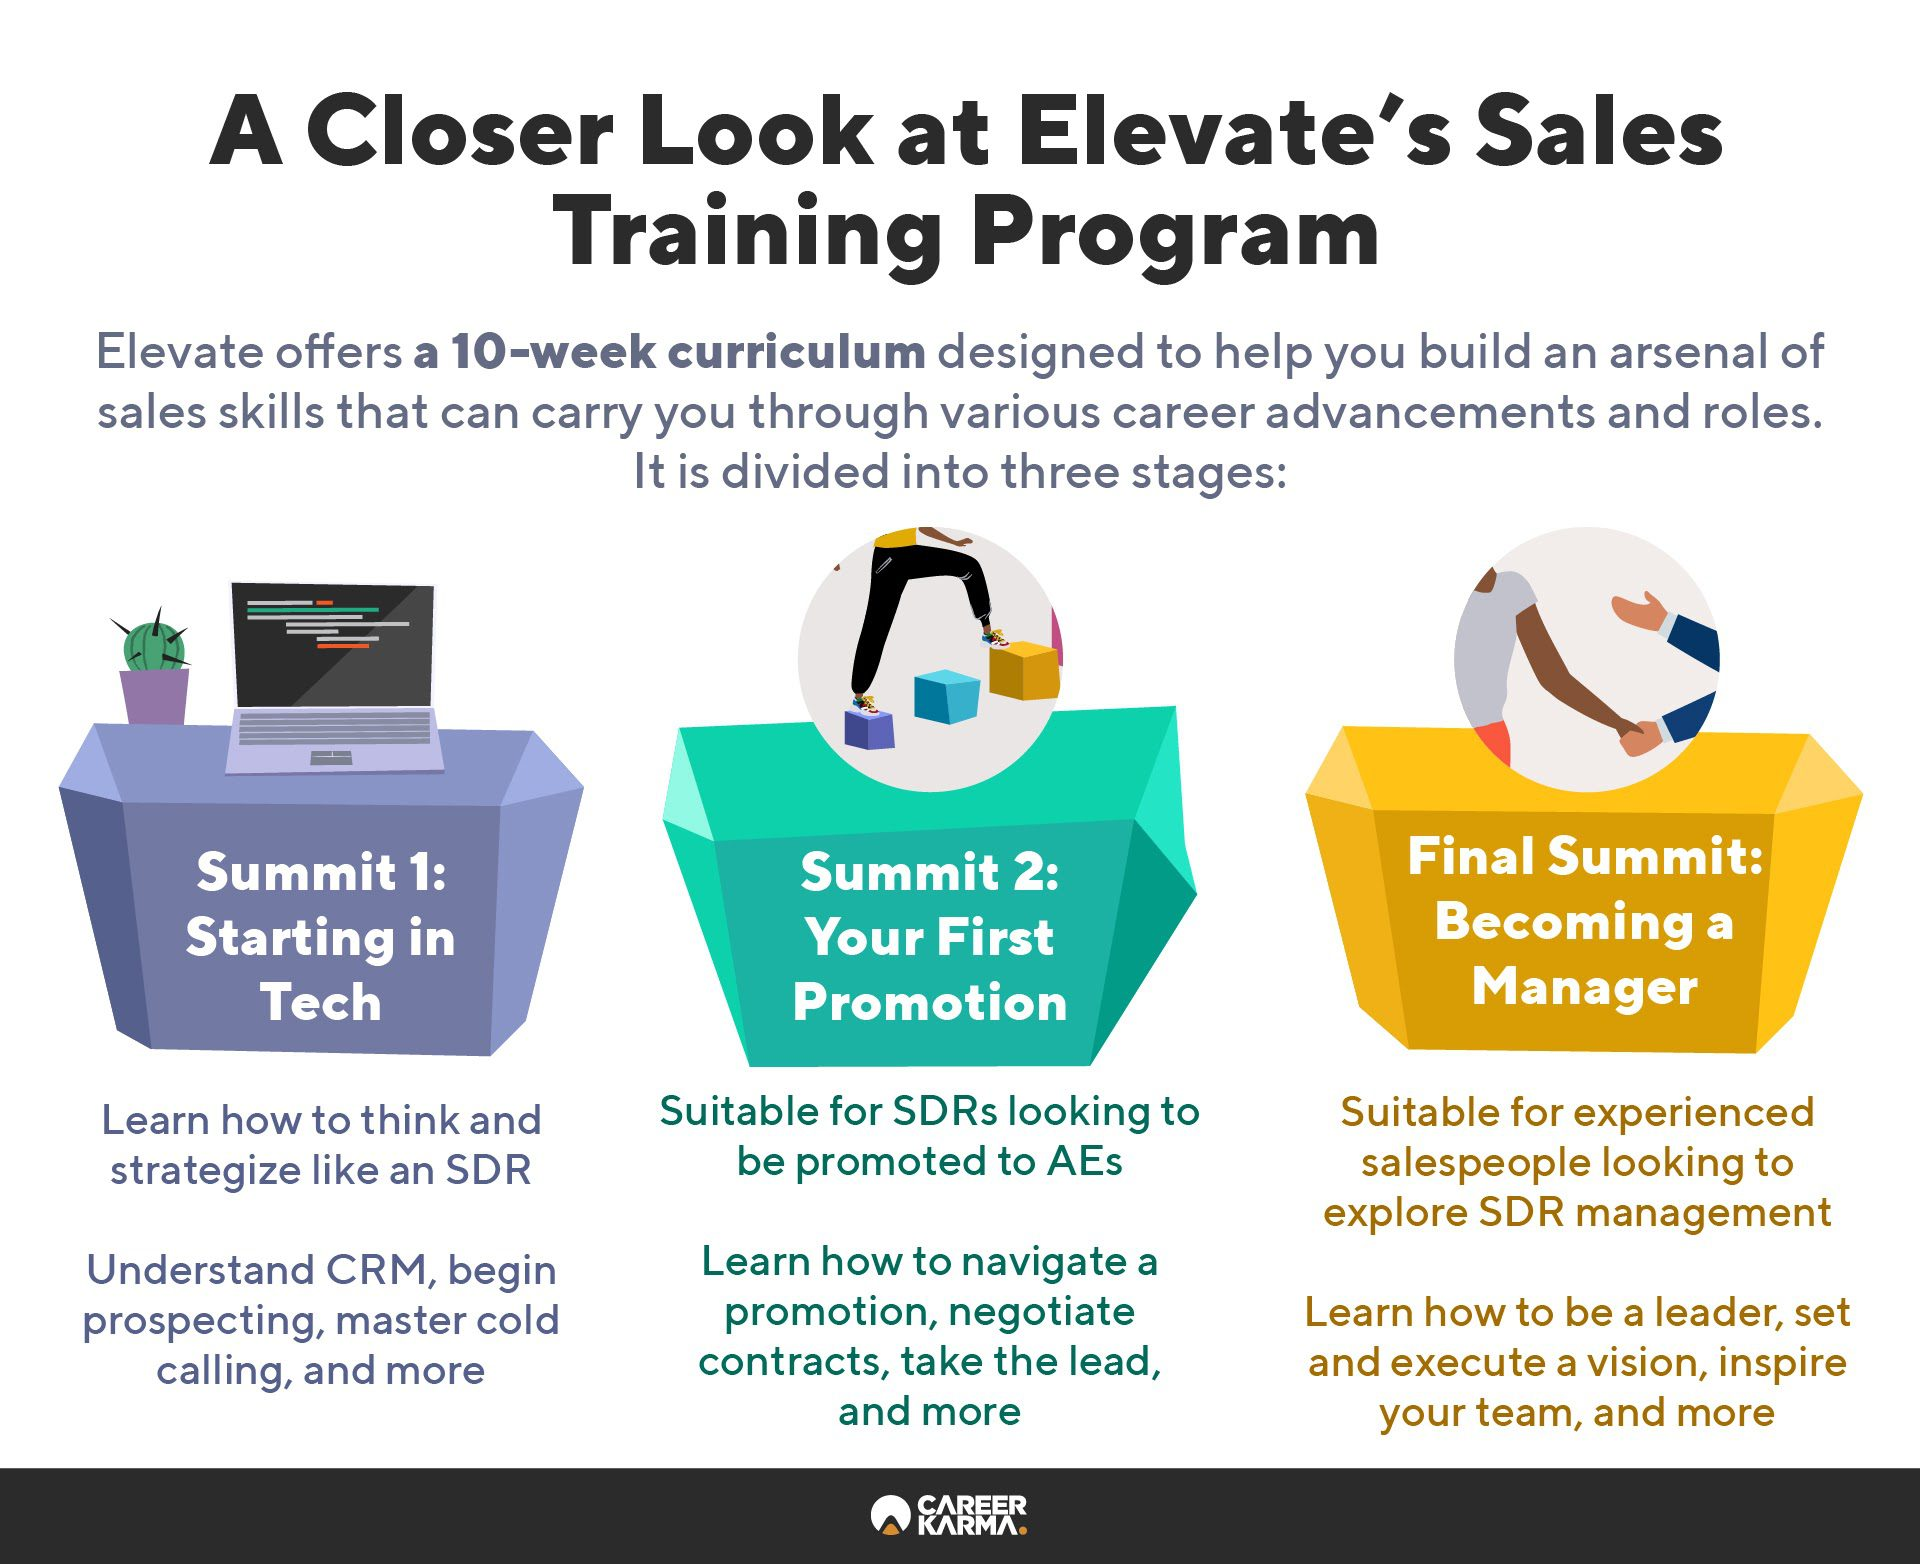 An infographic covering the key features of Elevate's sales training program